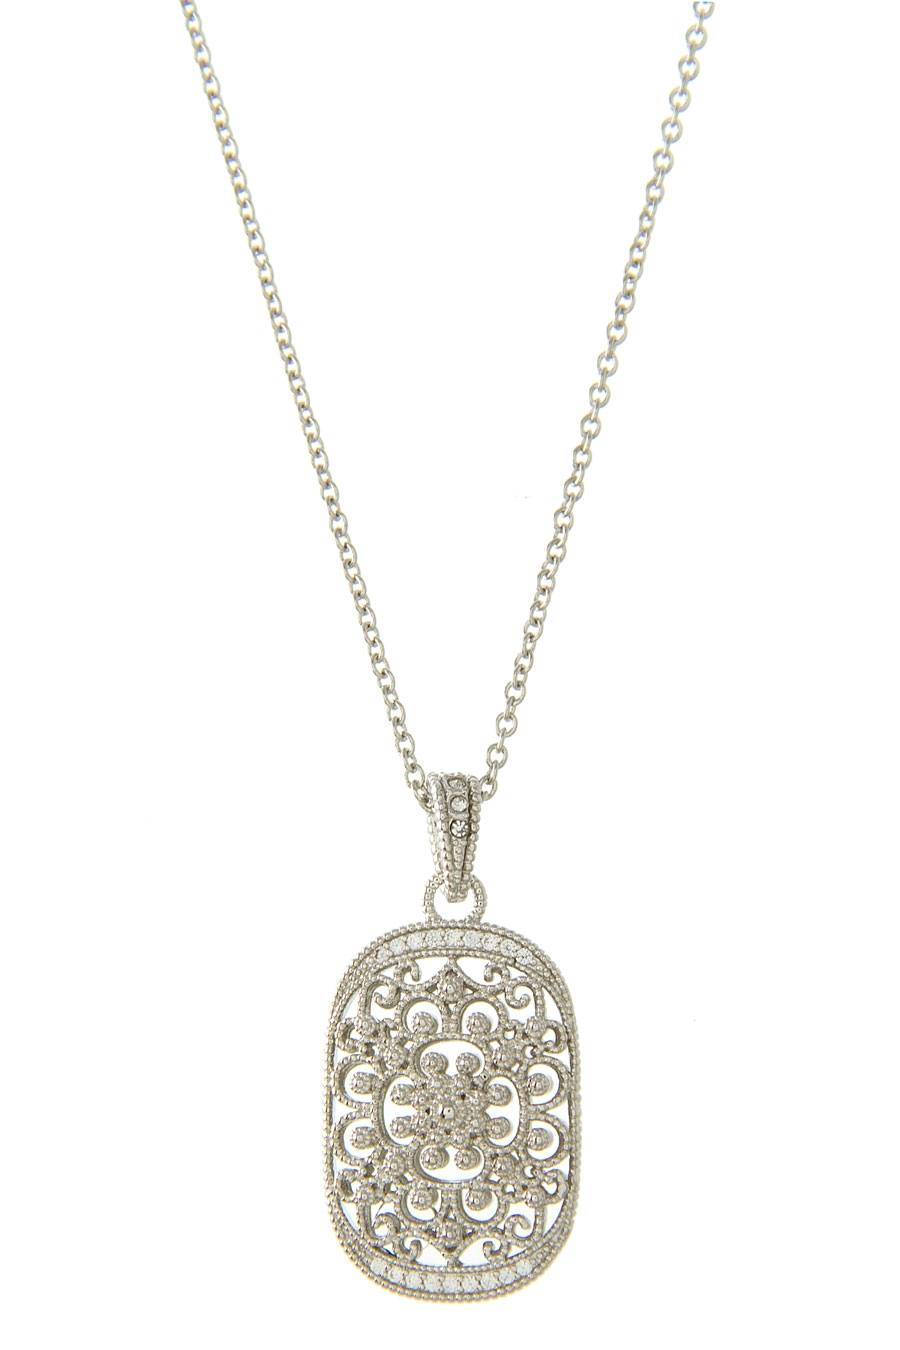 MEDALLION CZ NECKLACE - orangeshine.com